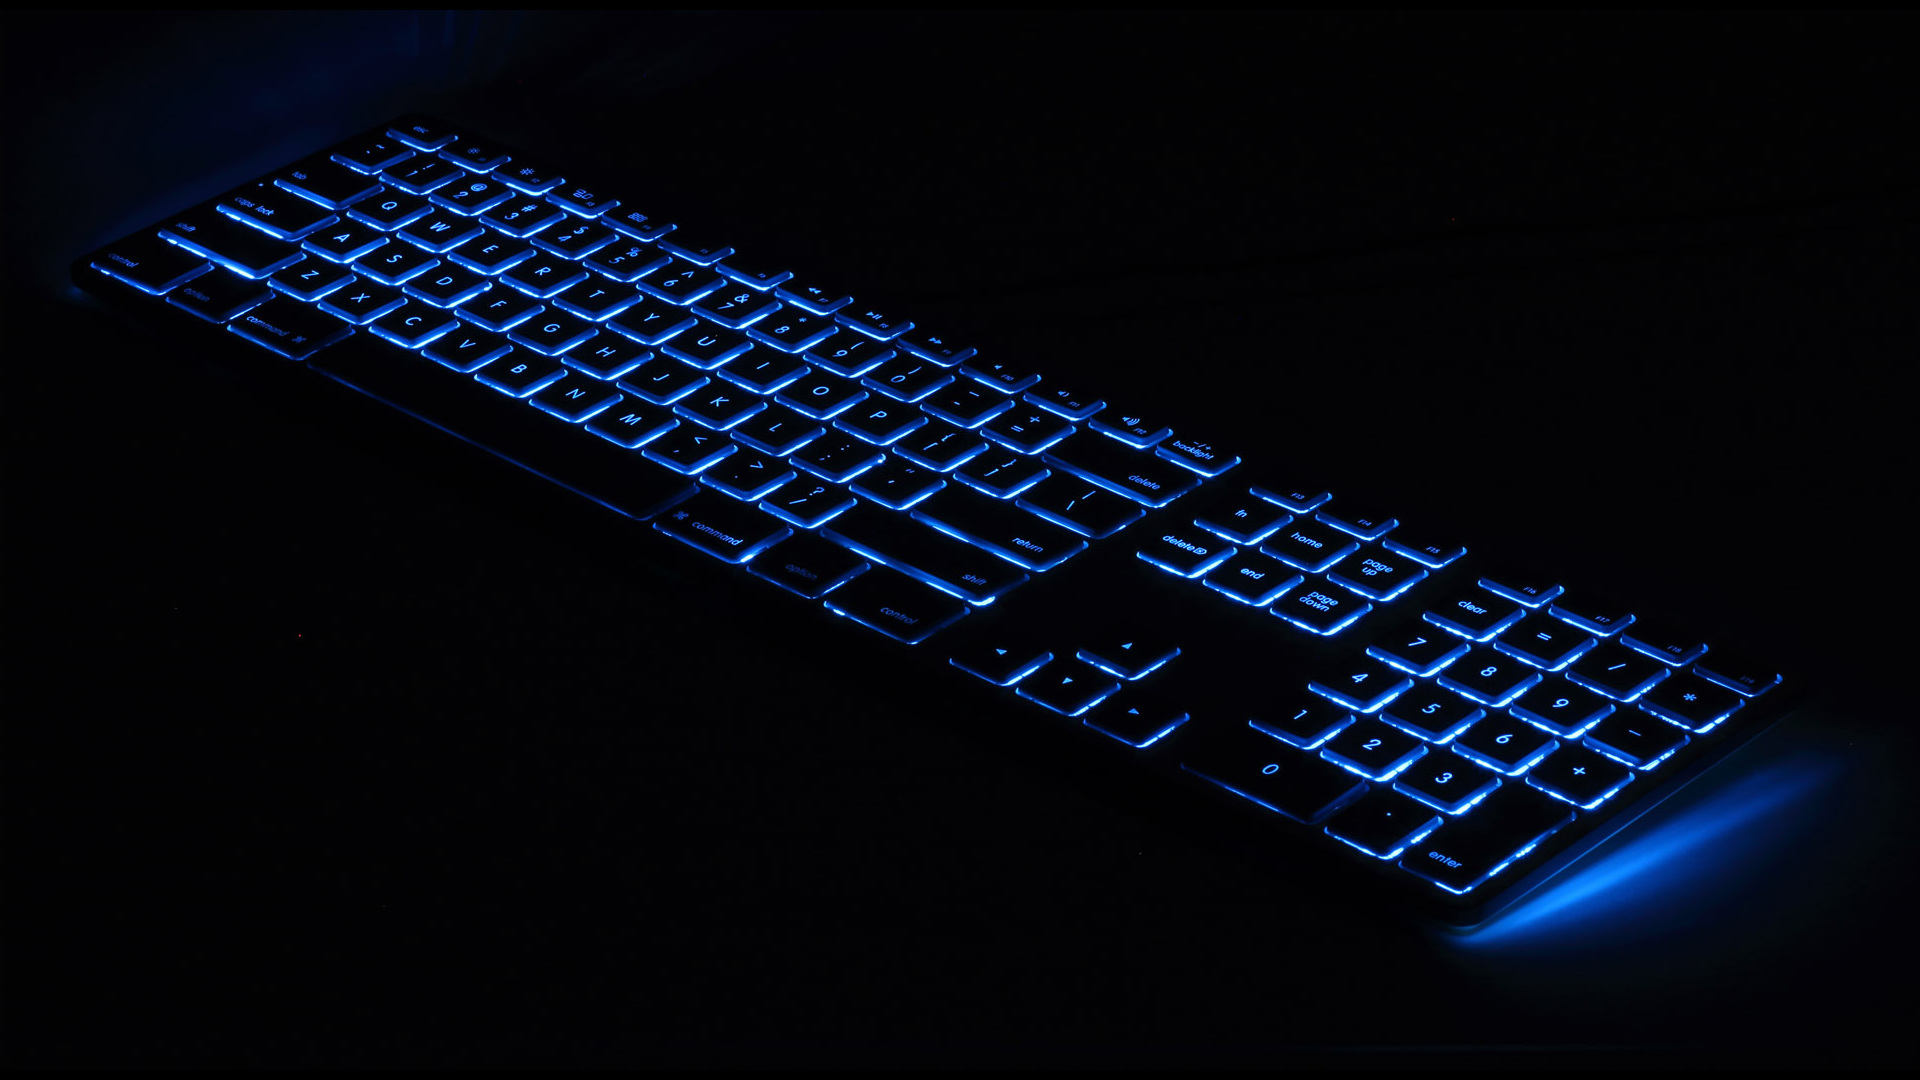 Matias introduces new wired aluminum keyboard with RGB backlight for